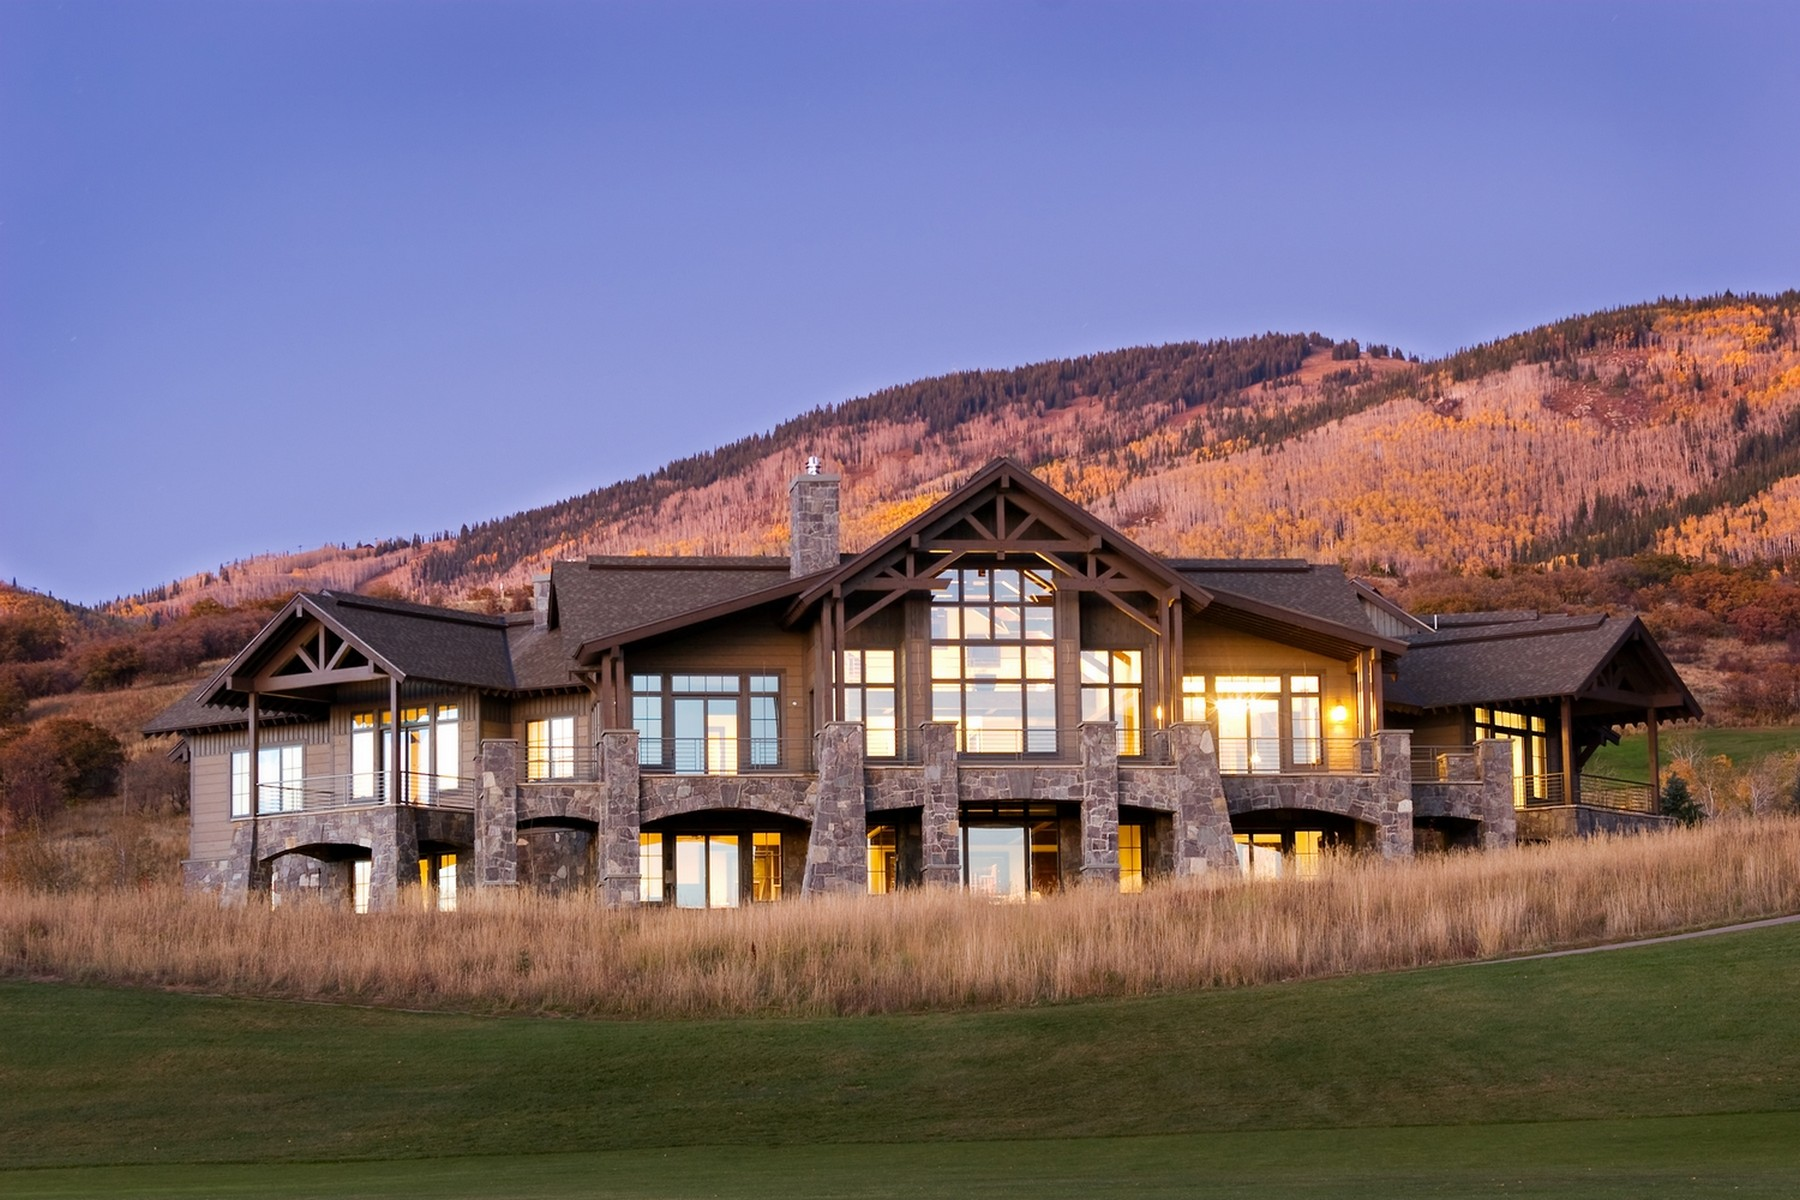 Moradia para Venda às 33560 Catamount Drive South Valley, Steamboat Springs, Colorado, 80487 Estados Unidos